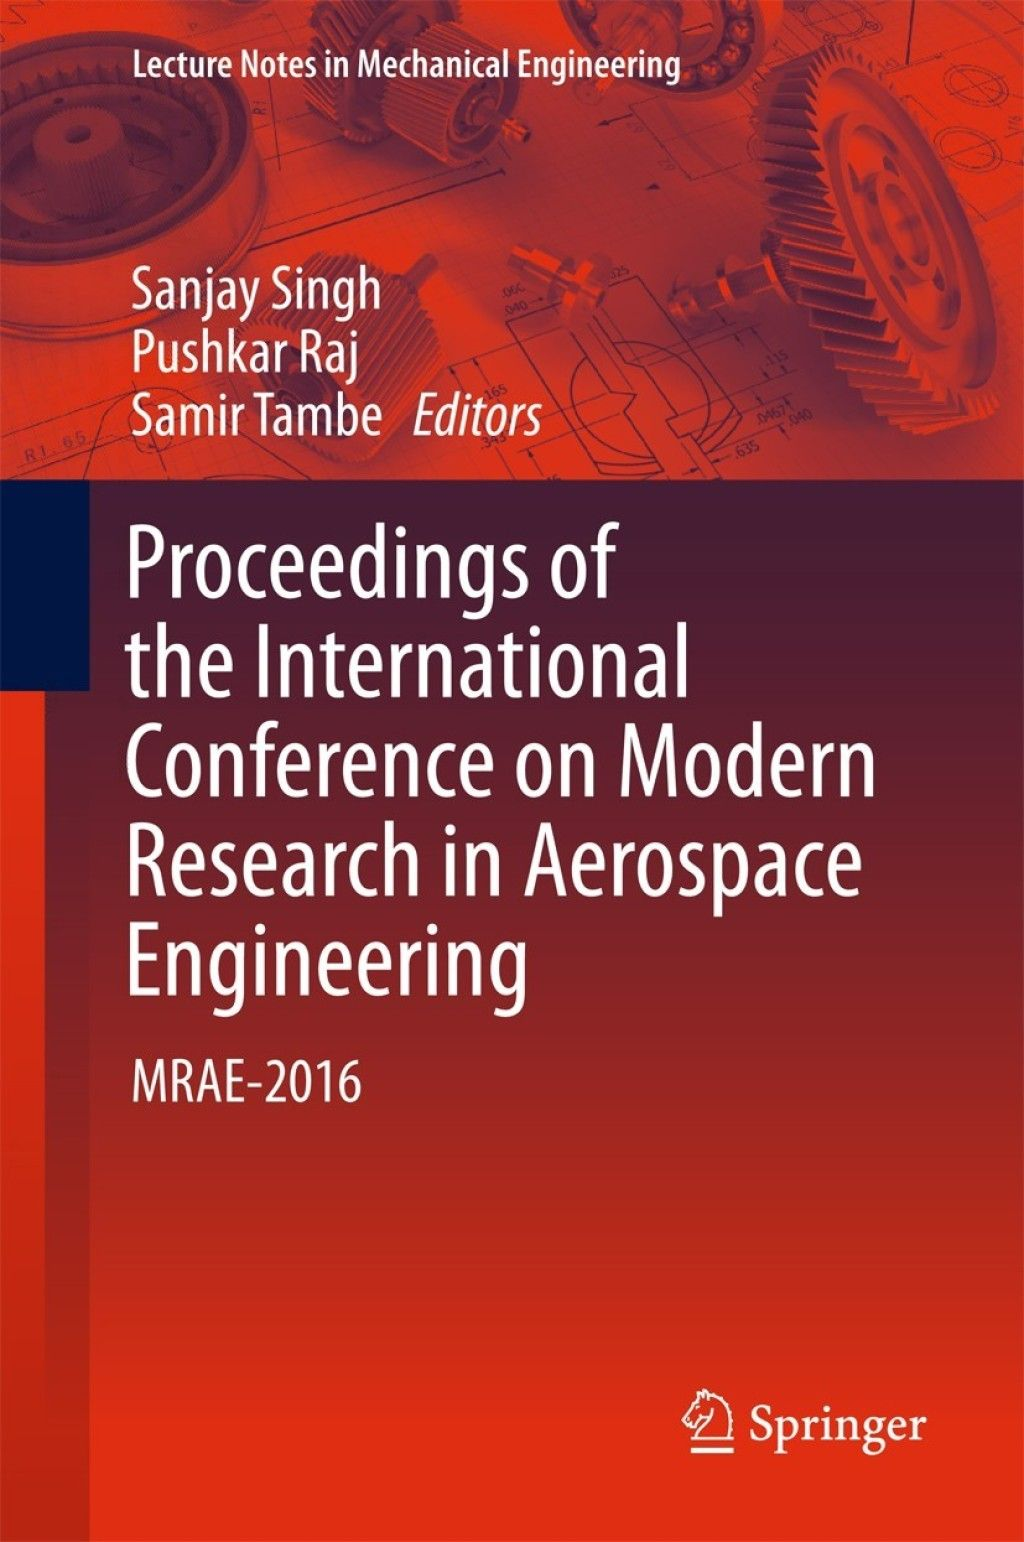 Proceedings Of The International Conference On Modern Research In Aerospace Engineering Ebook Robotics Engineering Engineering Automotive Engineering